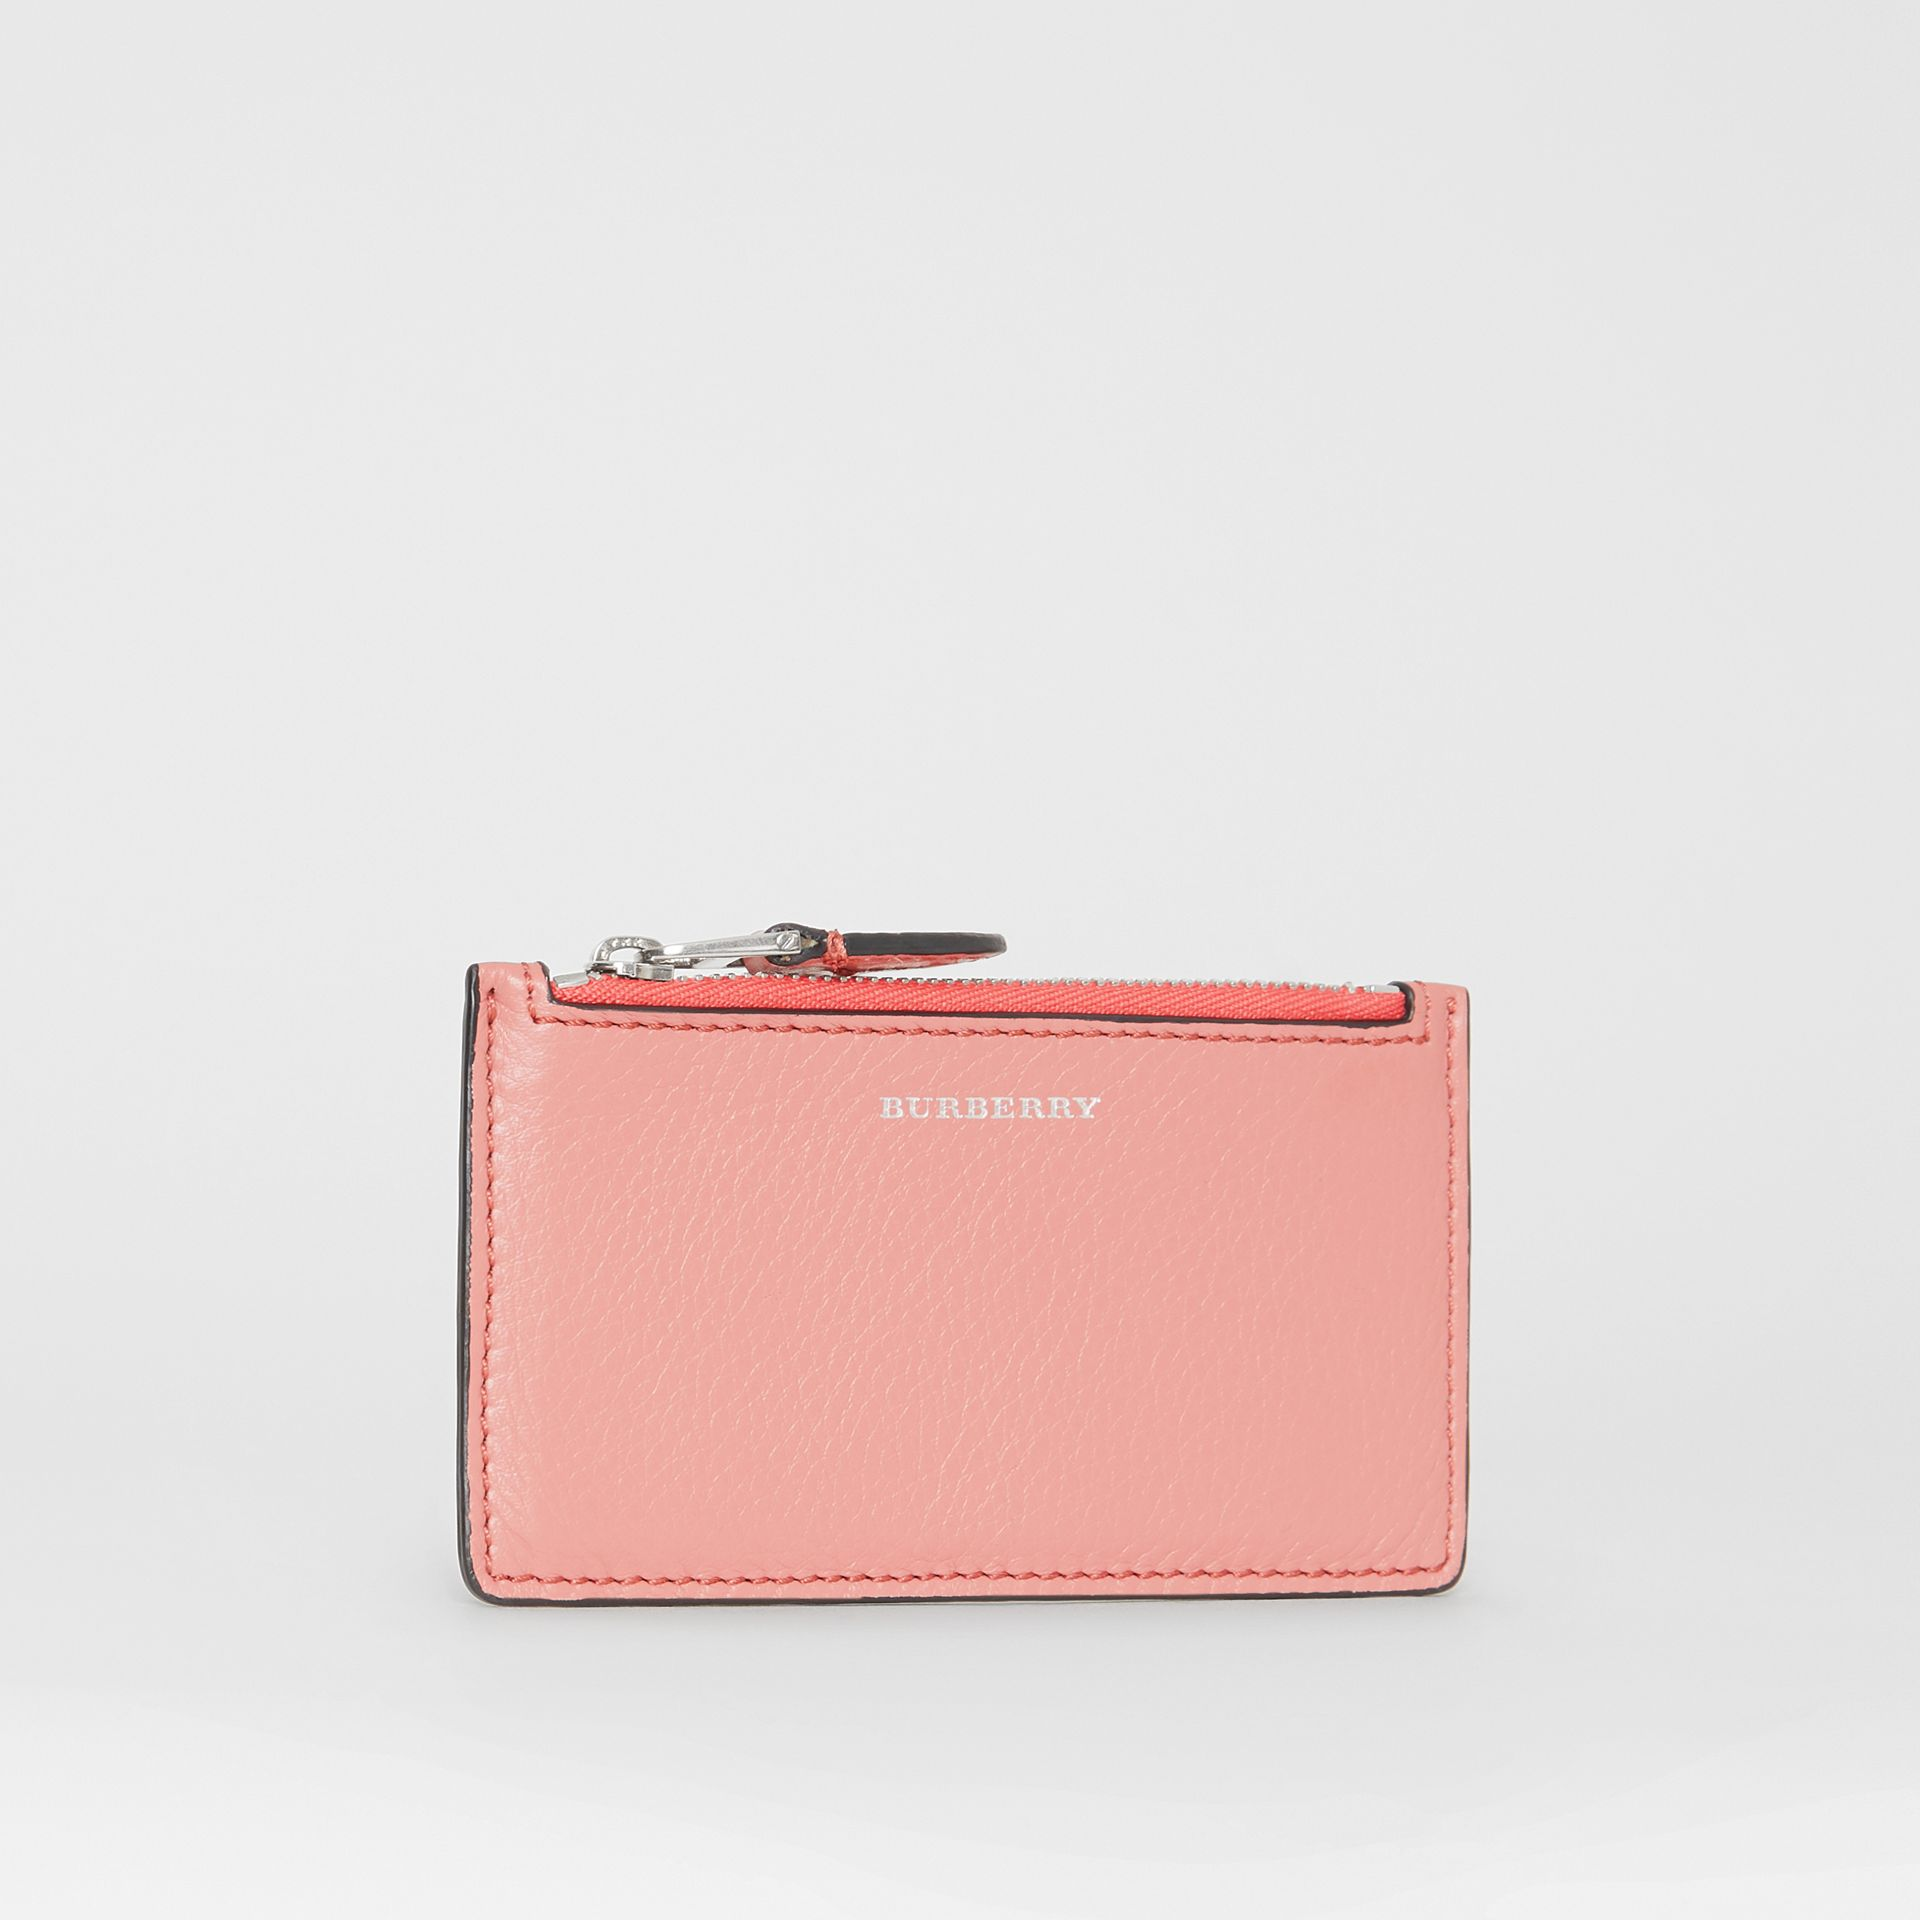 Two-tone Leather Zip Card Case in Dusty Rose - Women | Burberry Singapore - gallery image 3